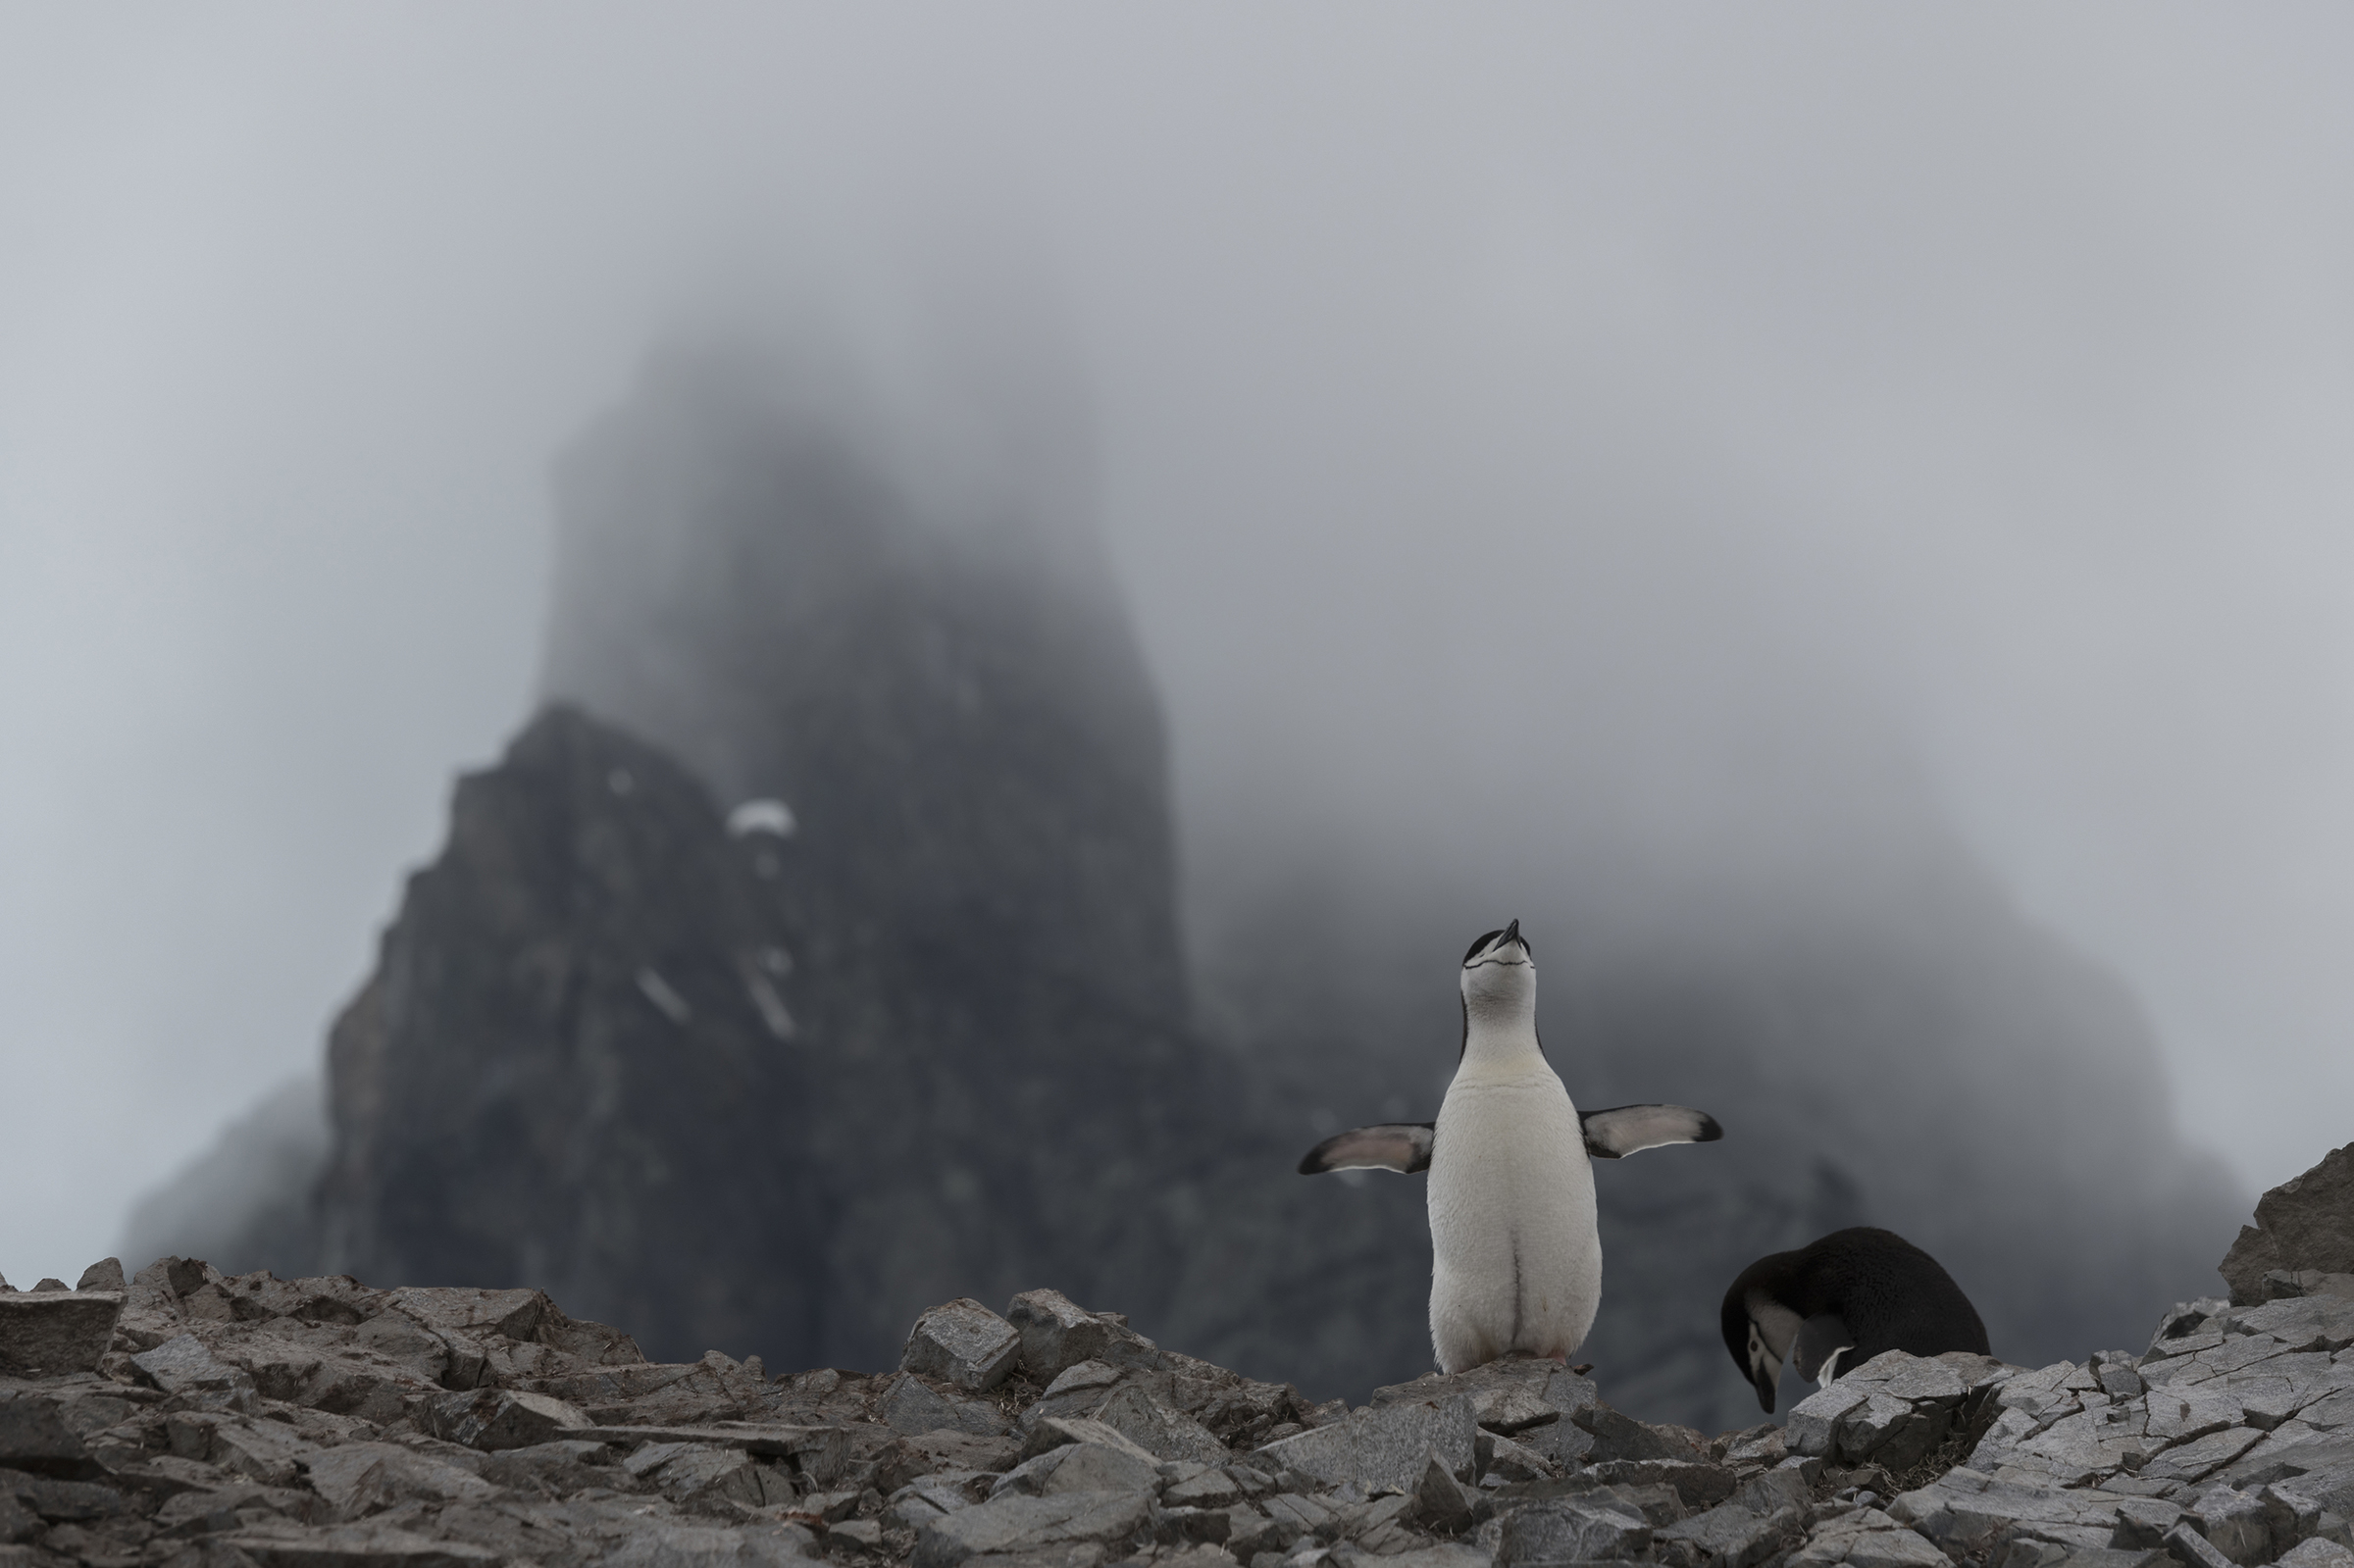 A chinstrap penguin nesting at Spigot Peak, in Orne Harbor on the Antarctic peninsula, on Feb. 6, 2020.